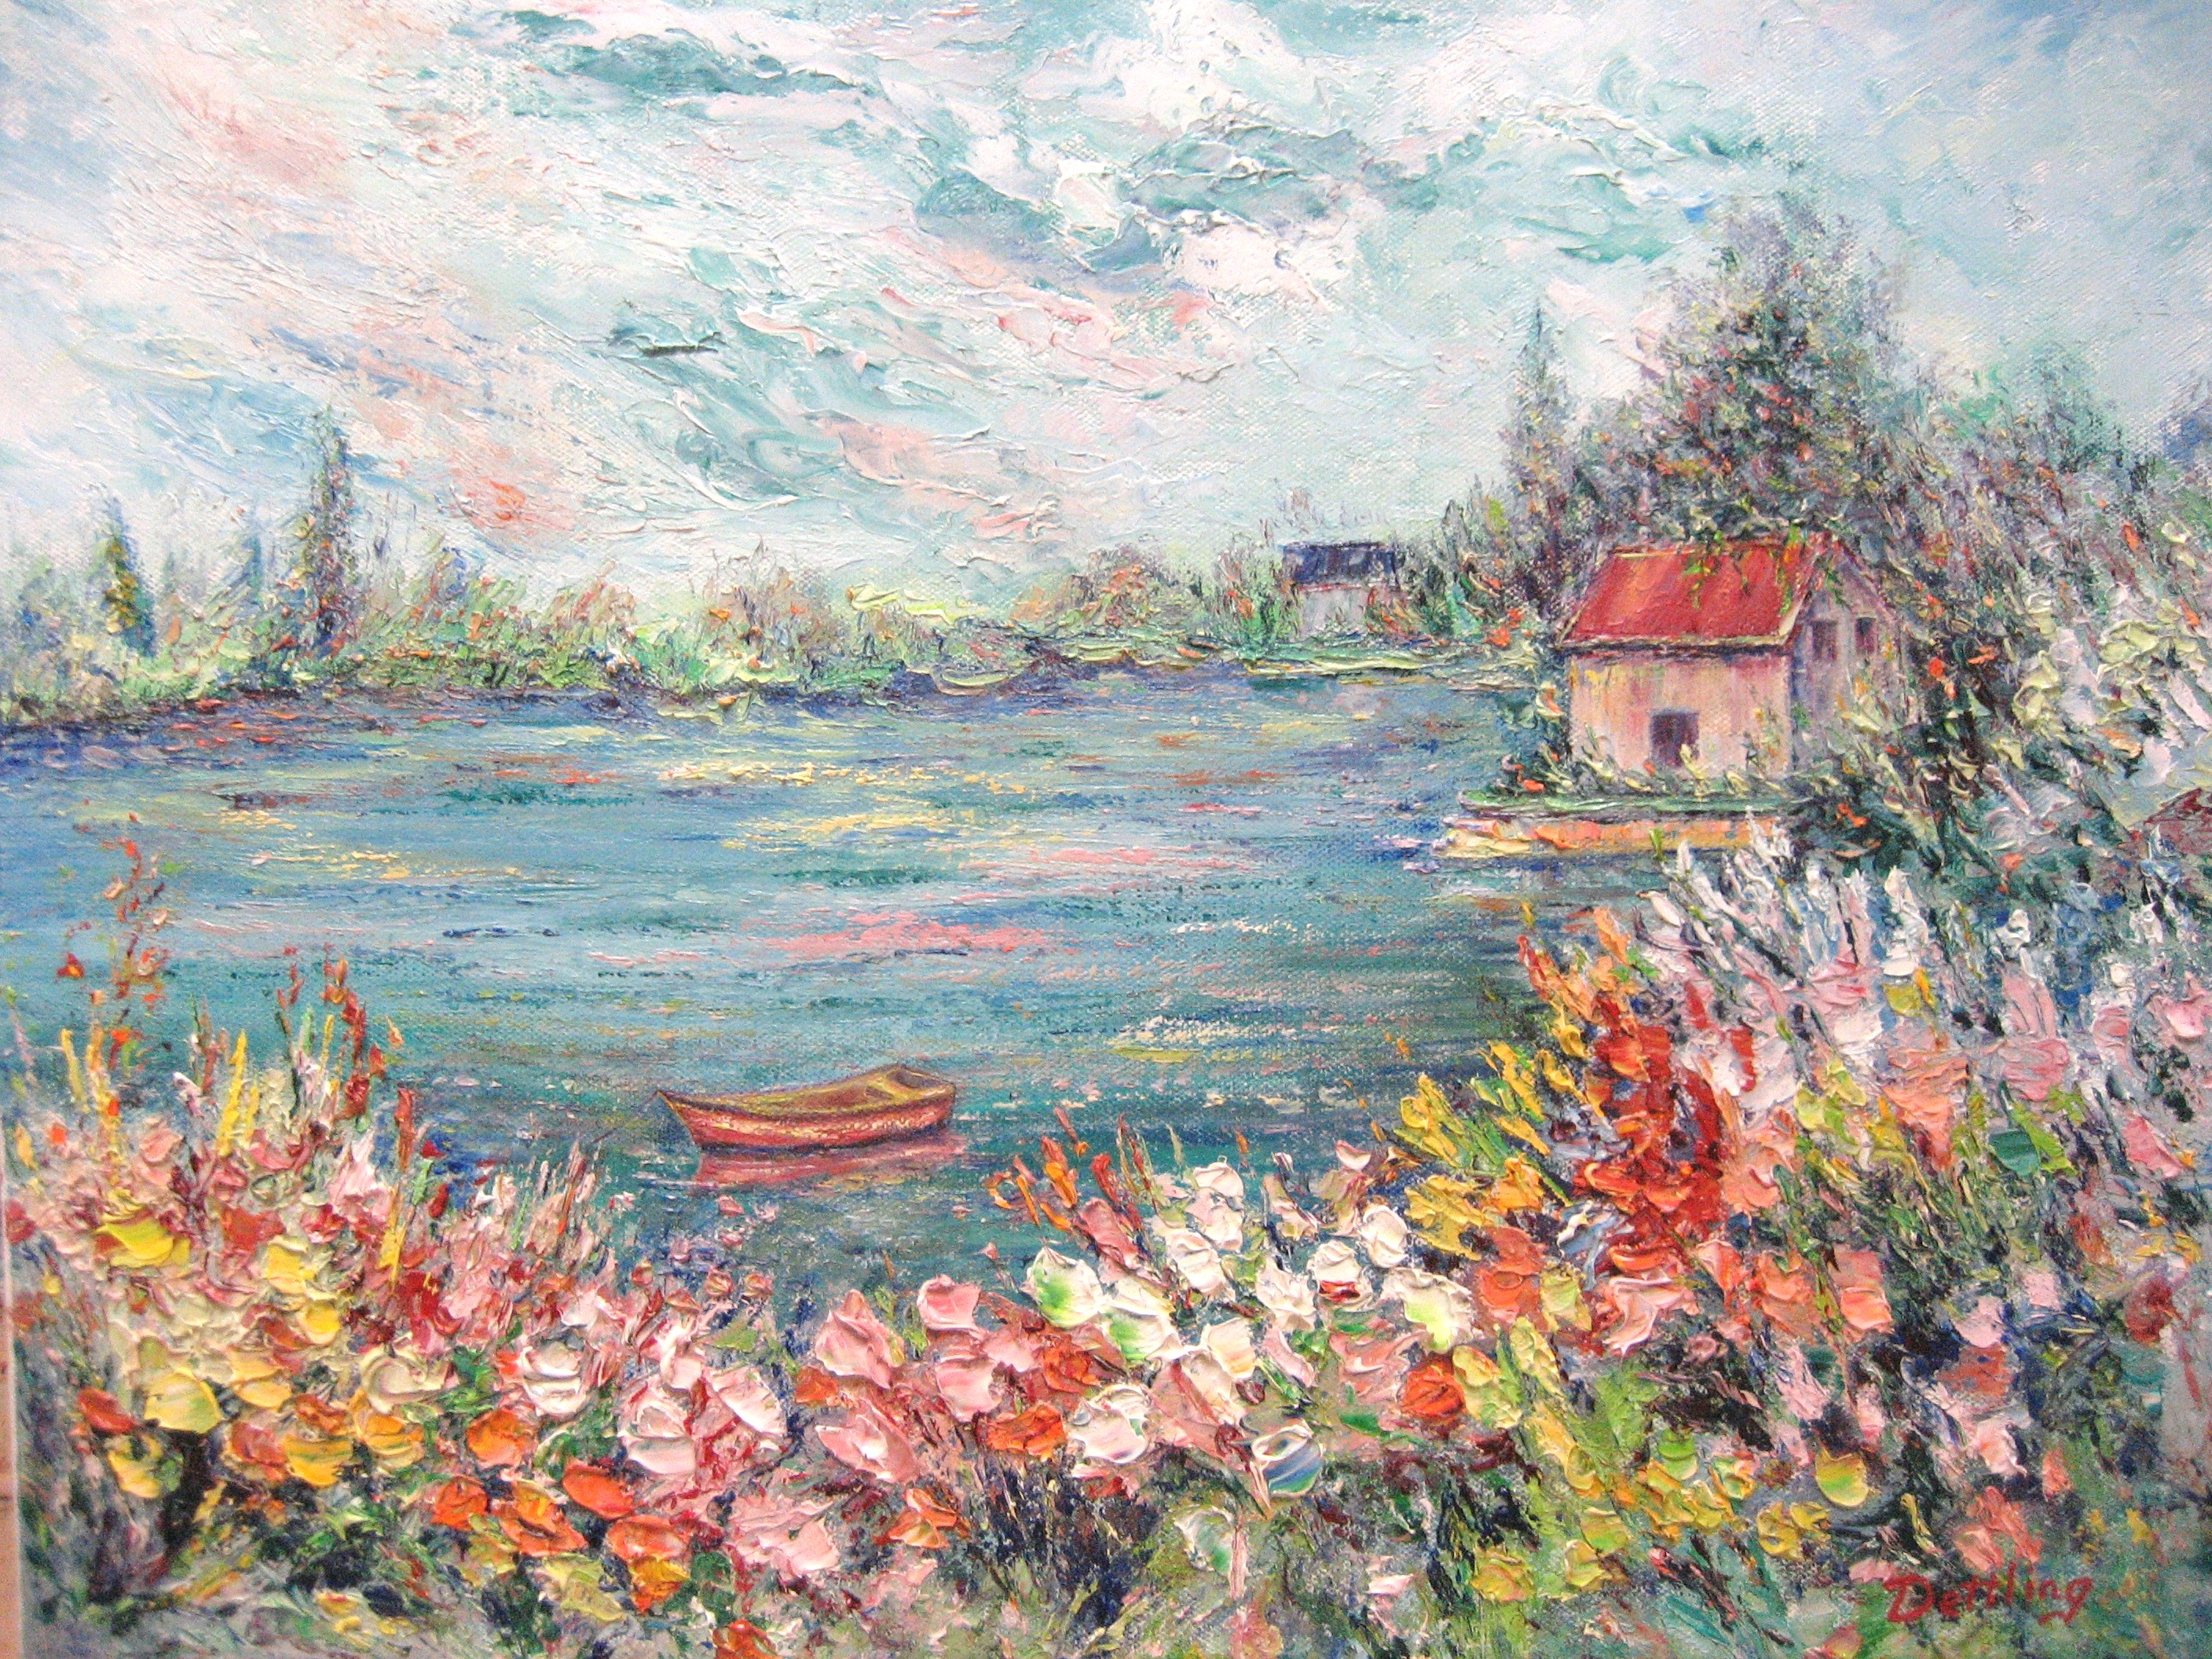 Blooms and Boats 16x20